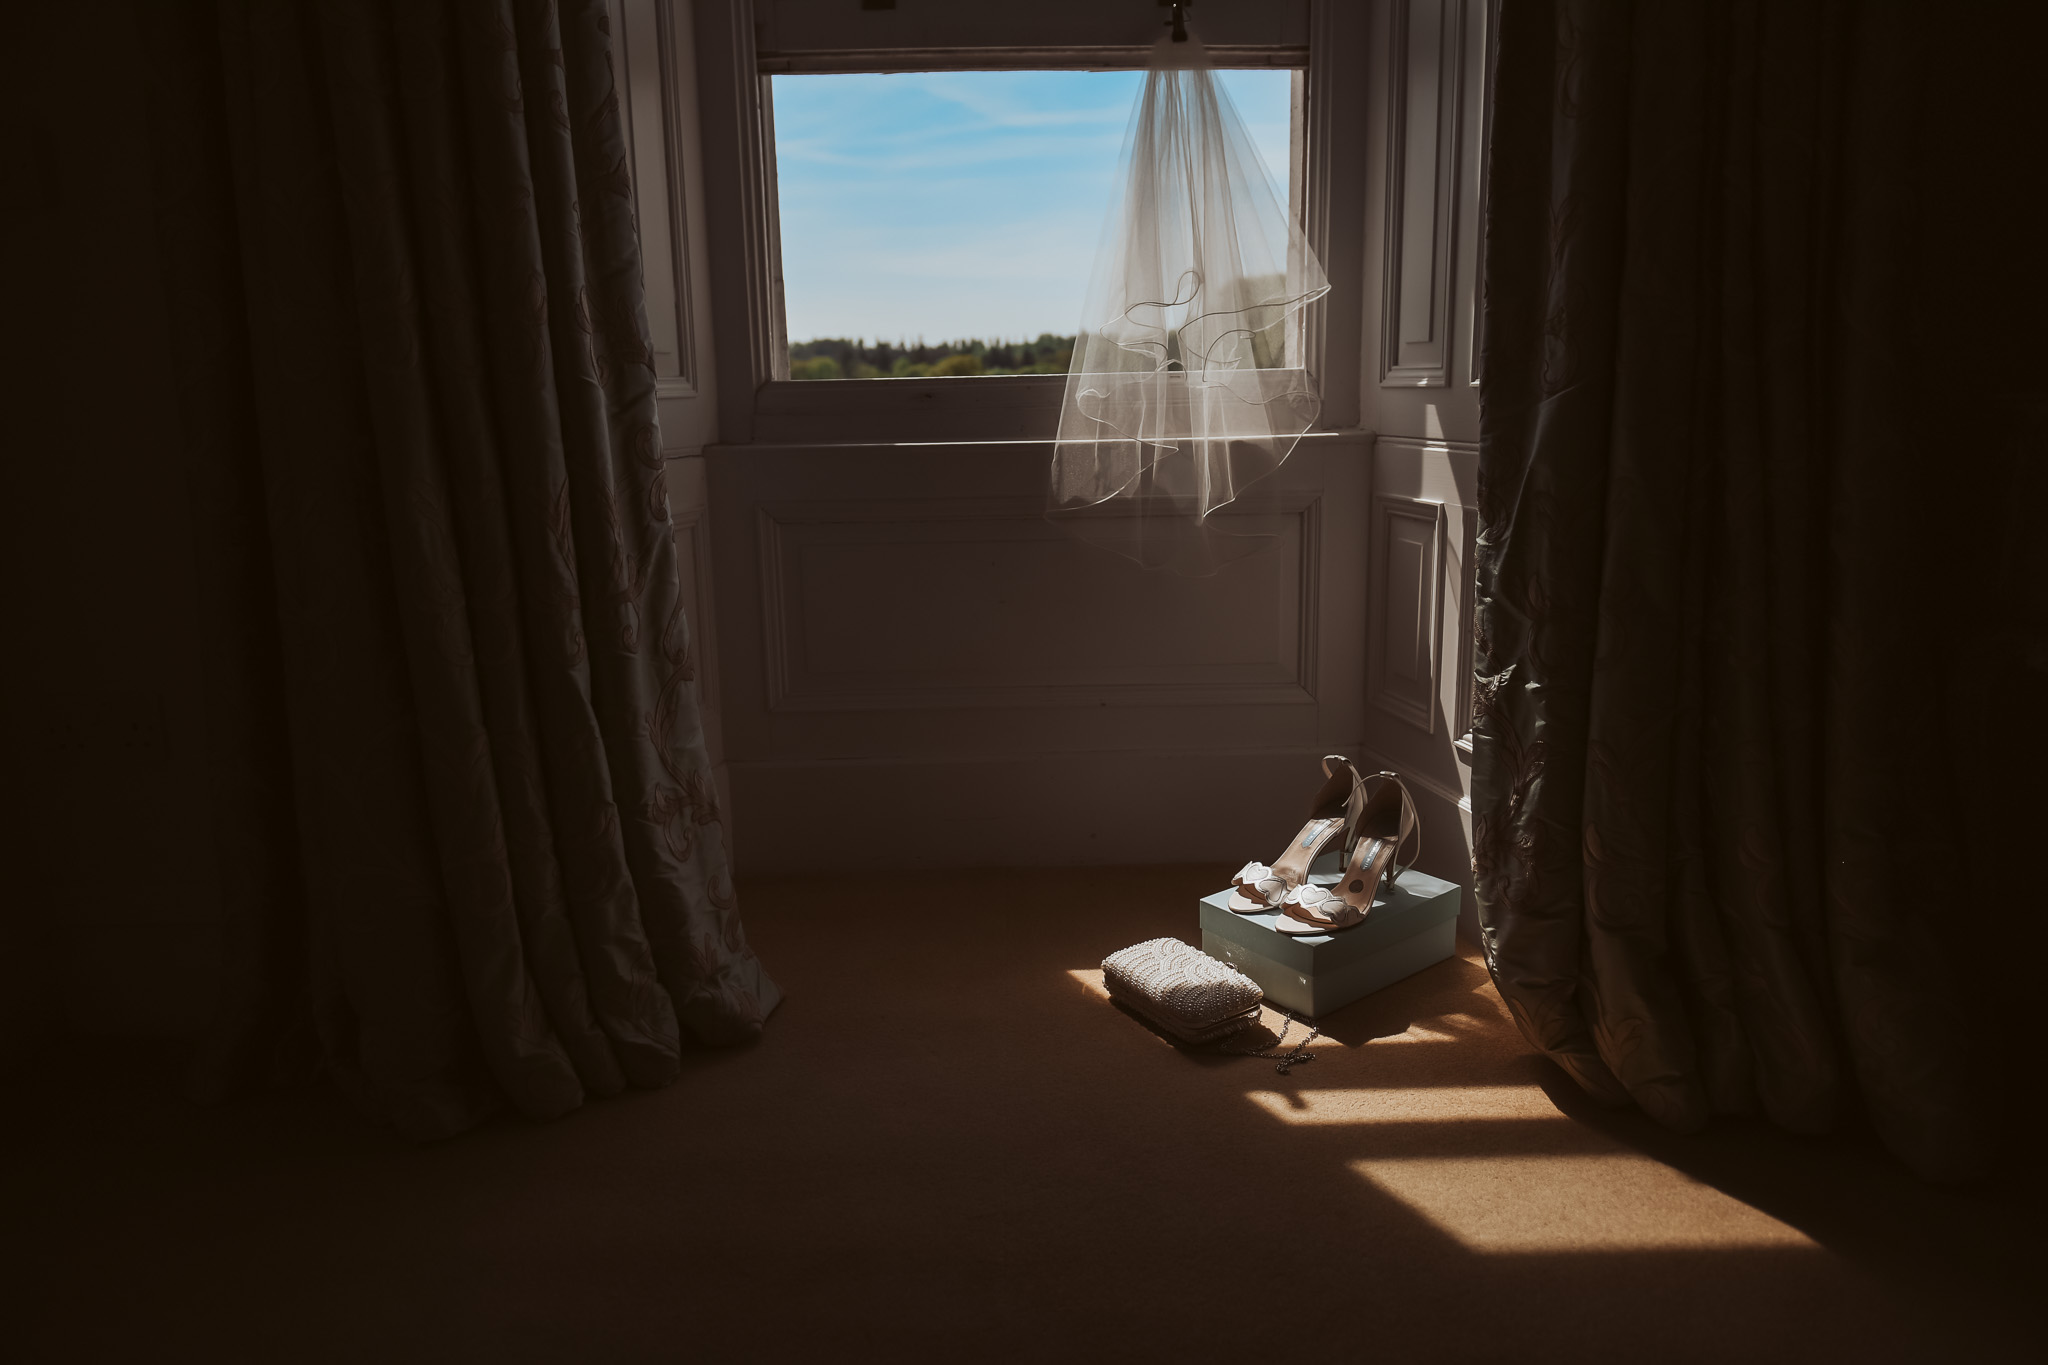 Shoes in natural window light